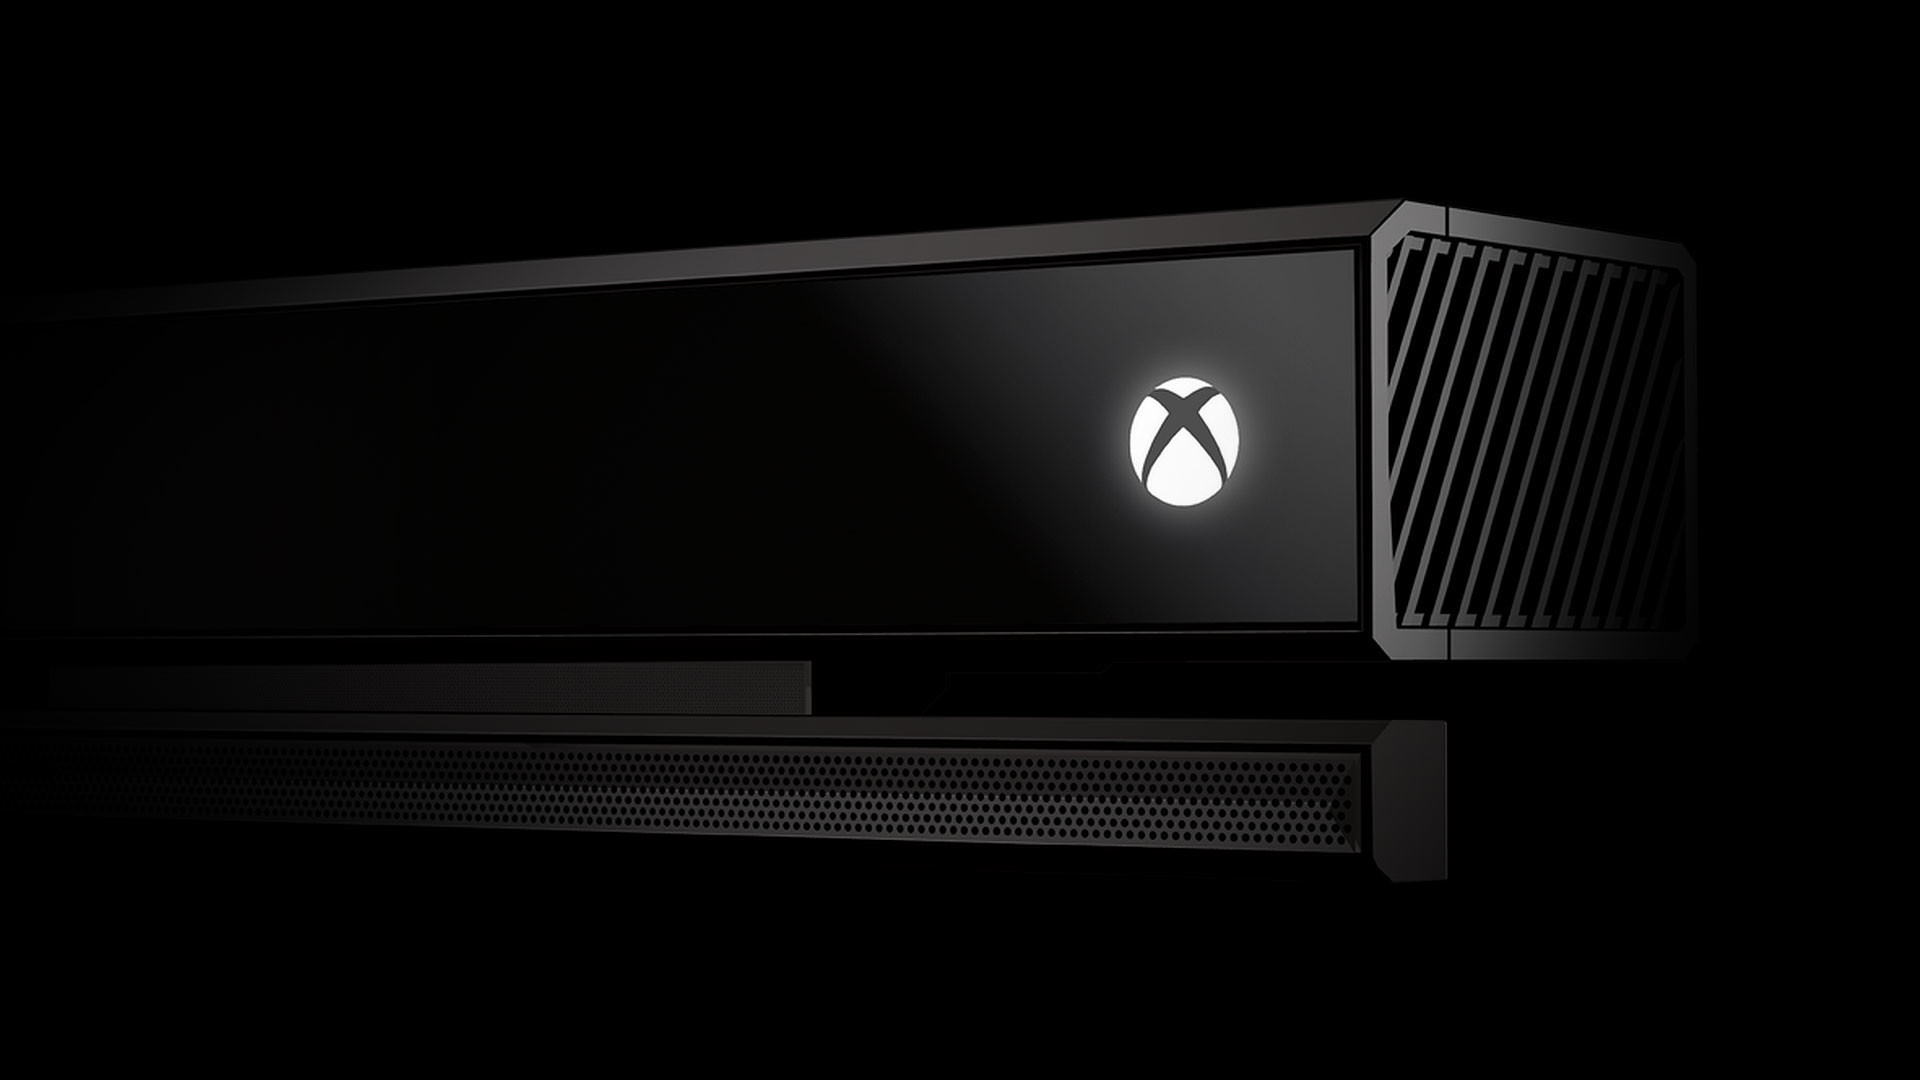 Xbox One Wallpaper 1920x1080 (83+ images)